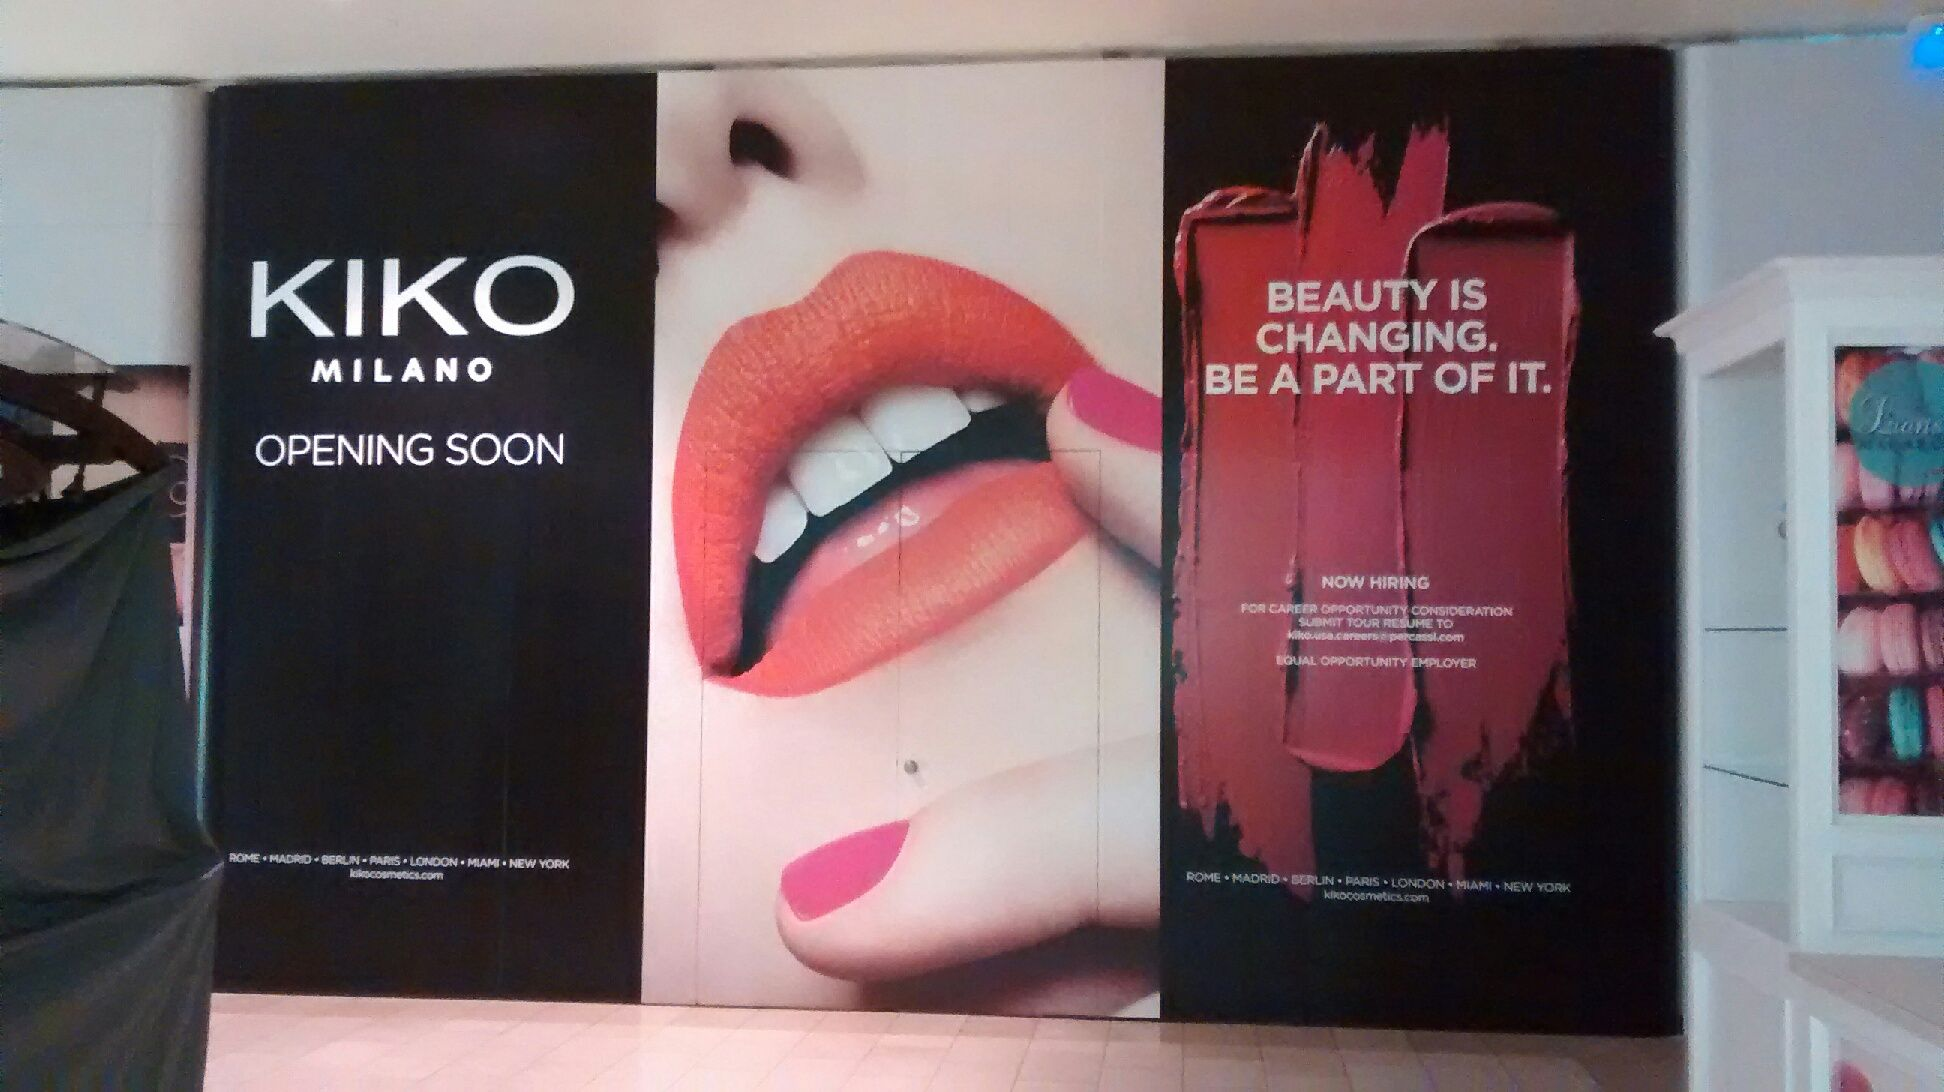 Kiko is opening at The Oaks Mall in California. Here's the barricade and graphic that we designed to hide construction and generate excitement for the grand opening!